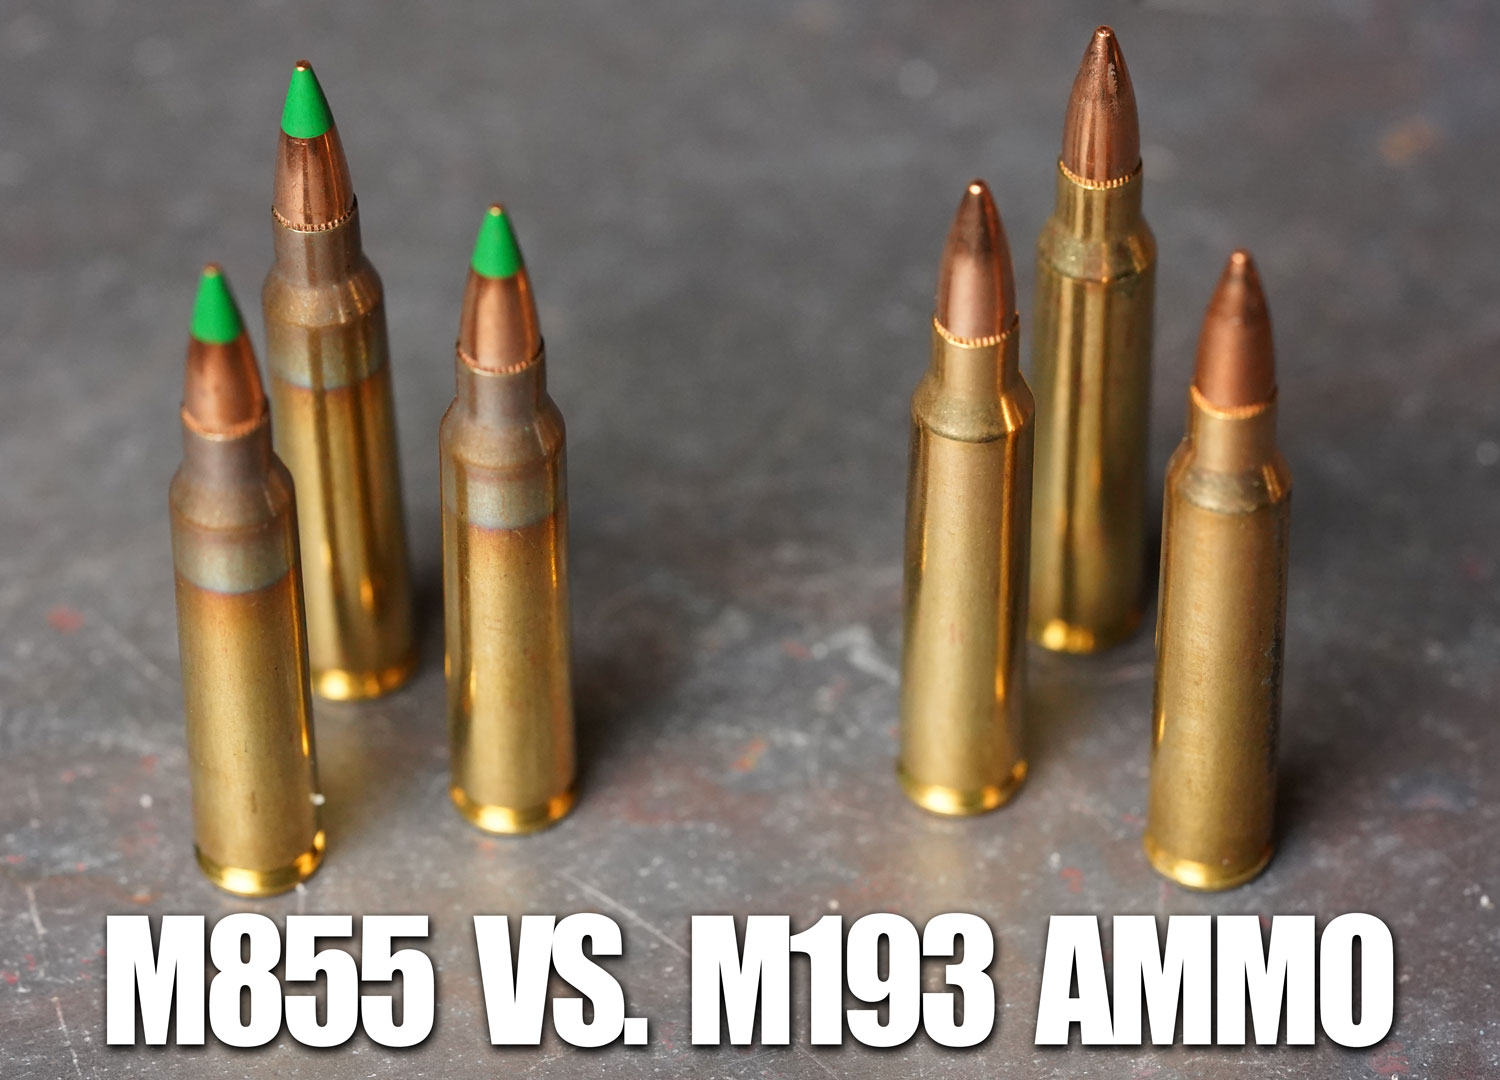 M855 vs M193 ammunition side by side on a table